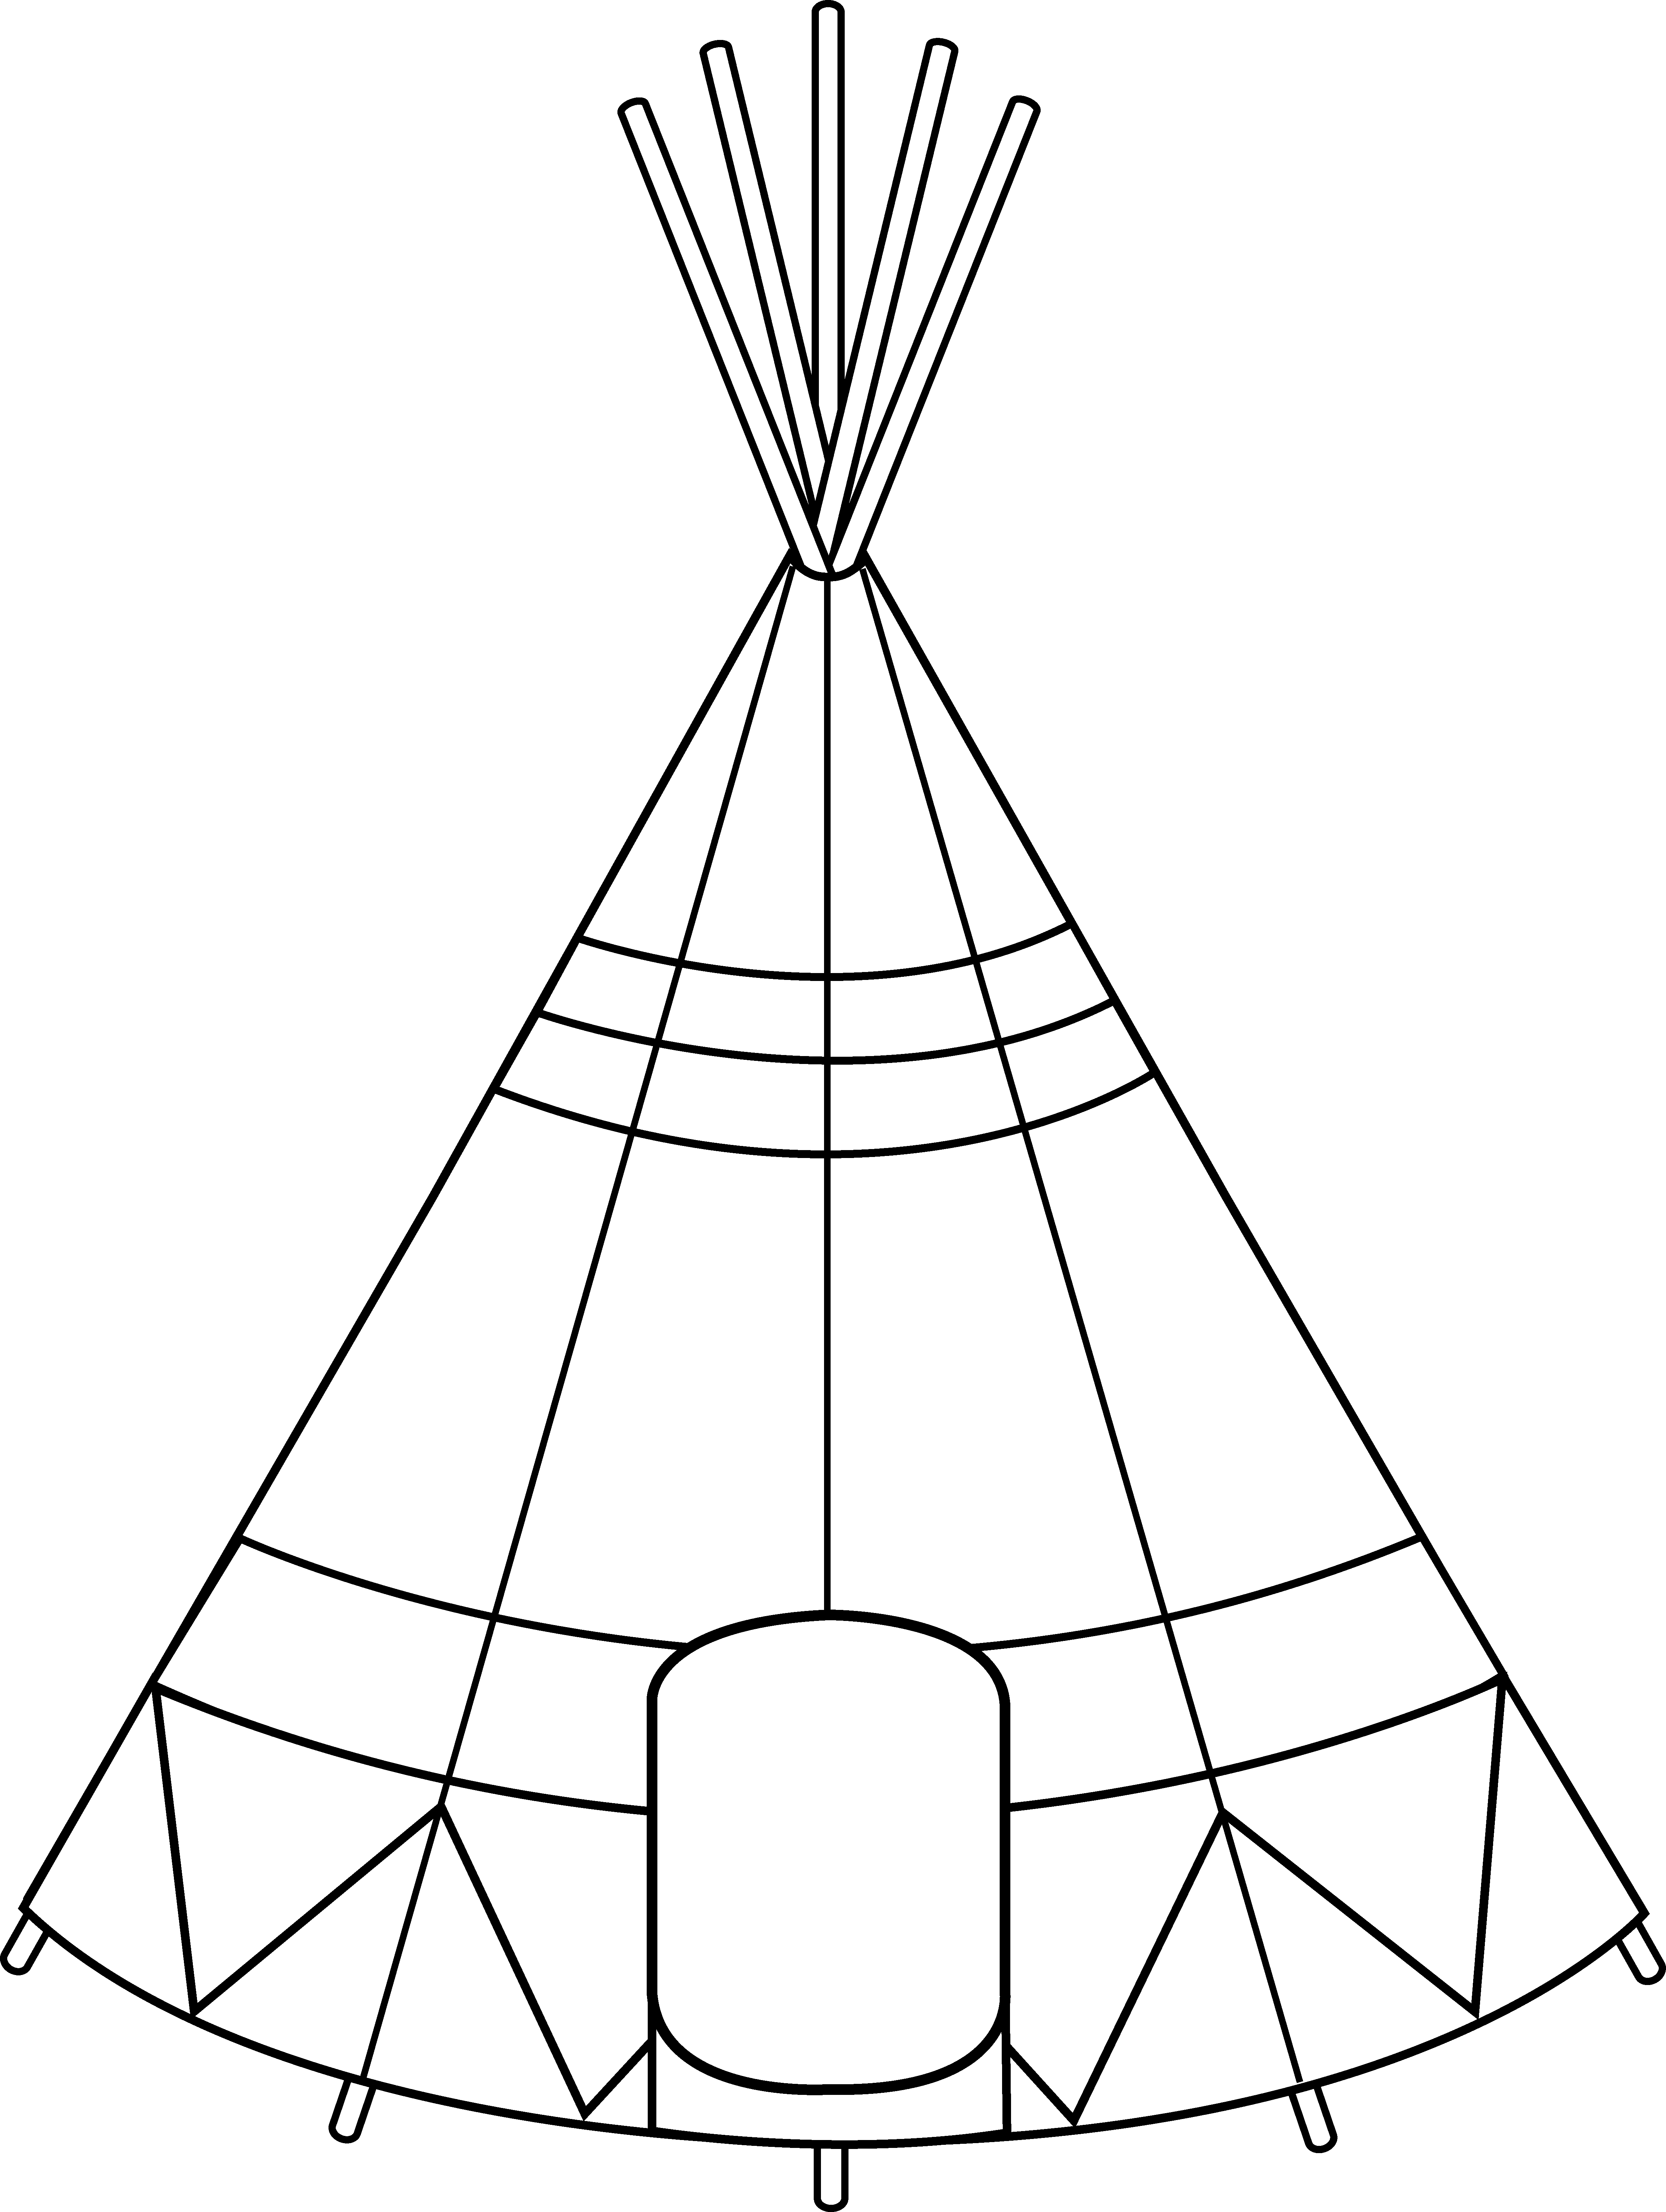 Native American clipart teepee tent Art Teepee Design Colorable Free